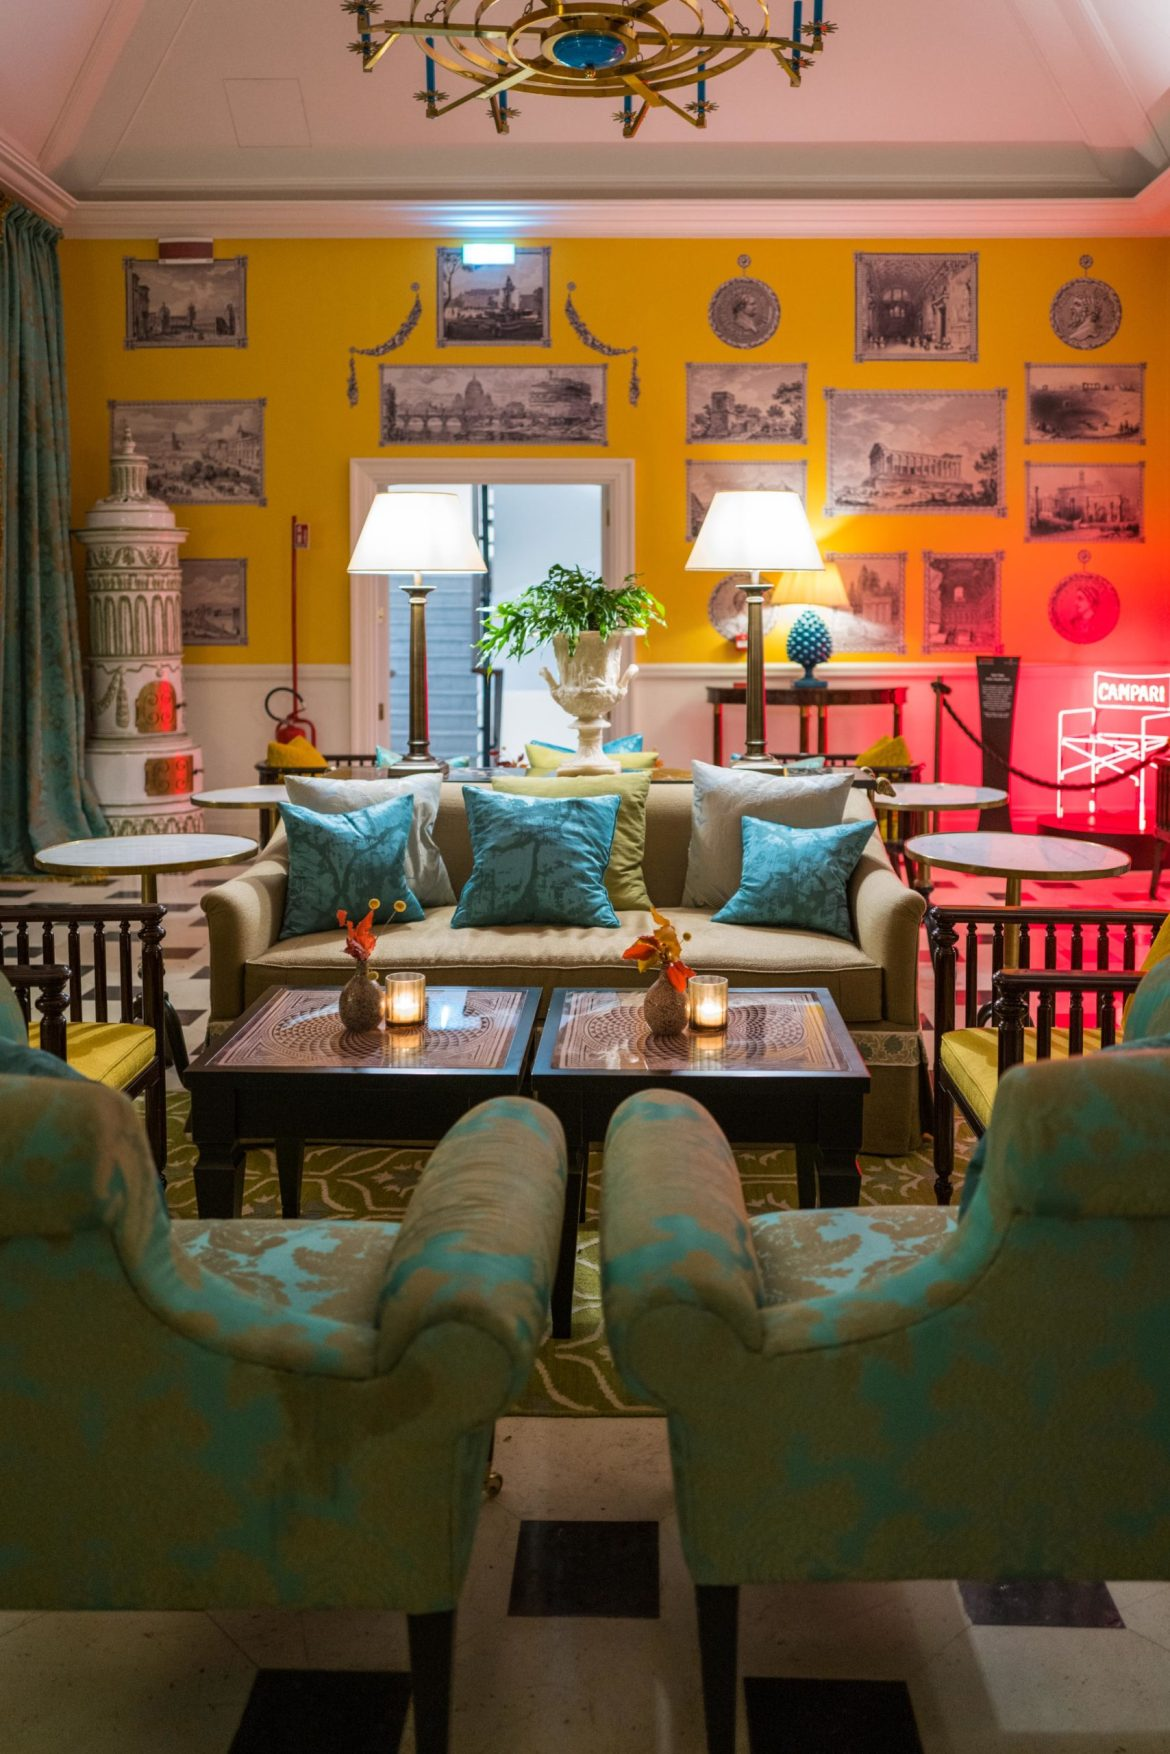 Order a cocktail at Julep Herbal & Vermouth Bar at Rocco Forte's Hotel de la Ville Rome - The Taste Edit #rome #hotel #decor #travel